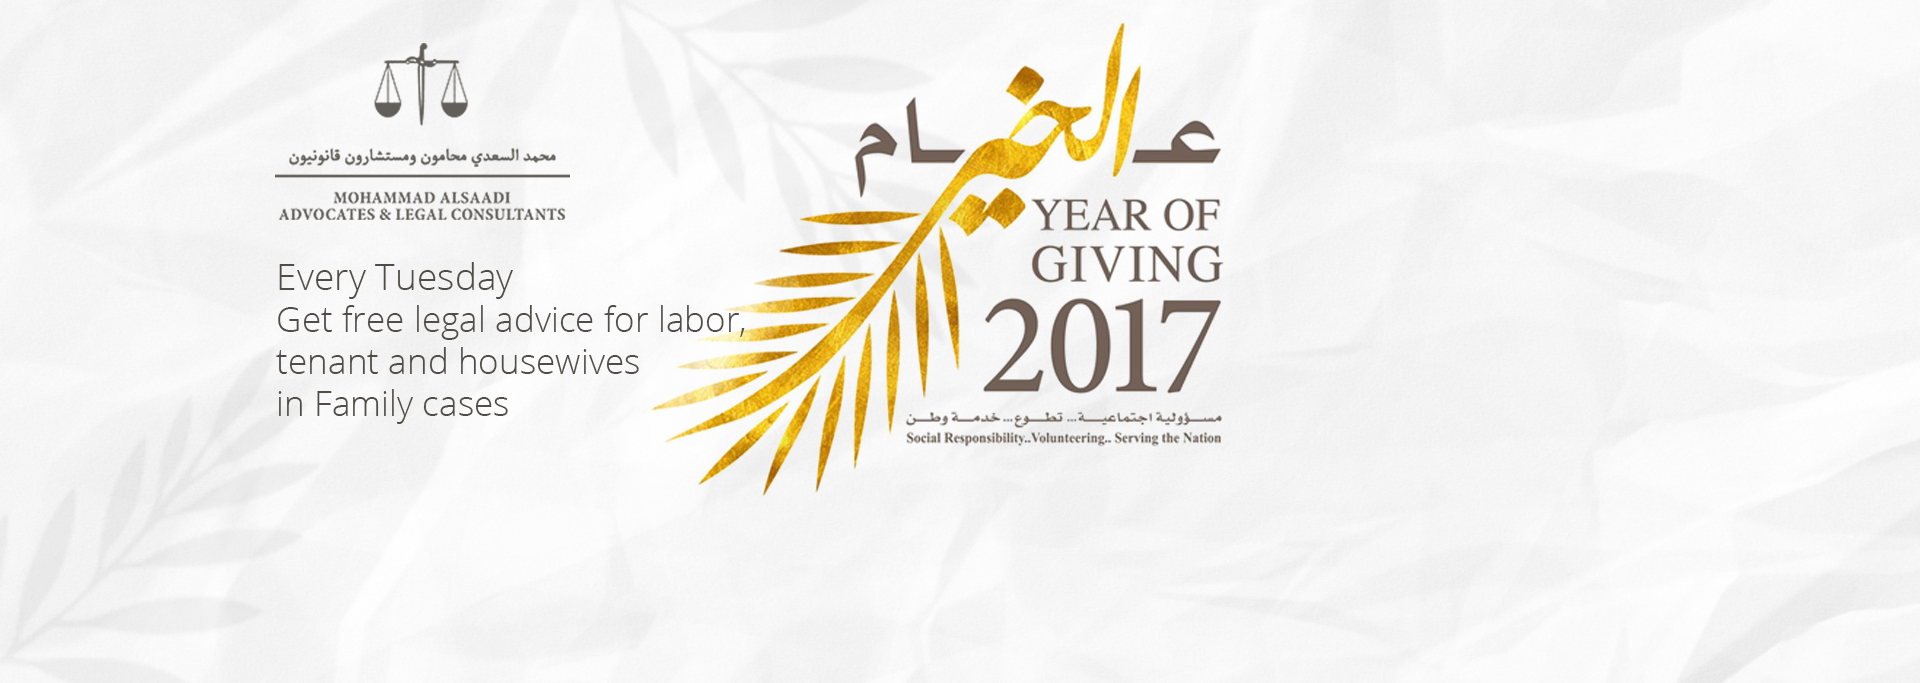 Year of Giving